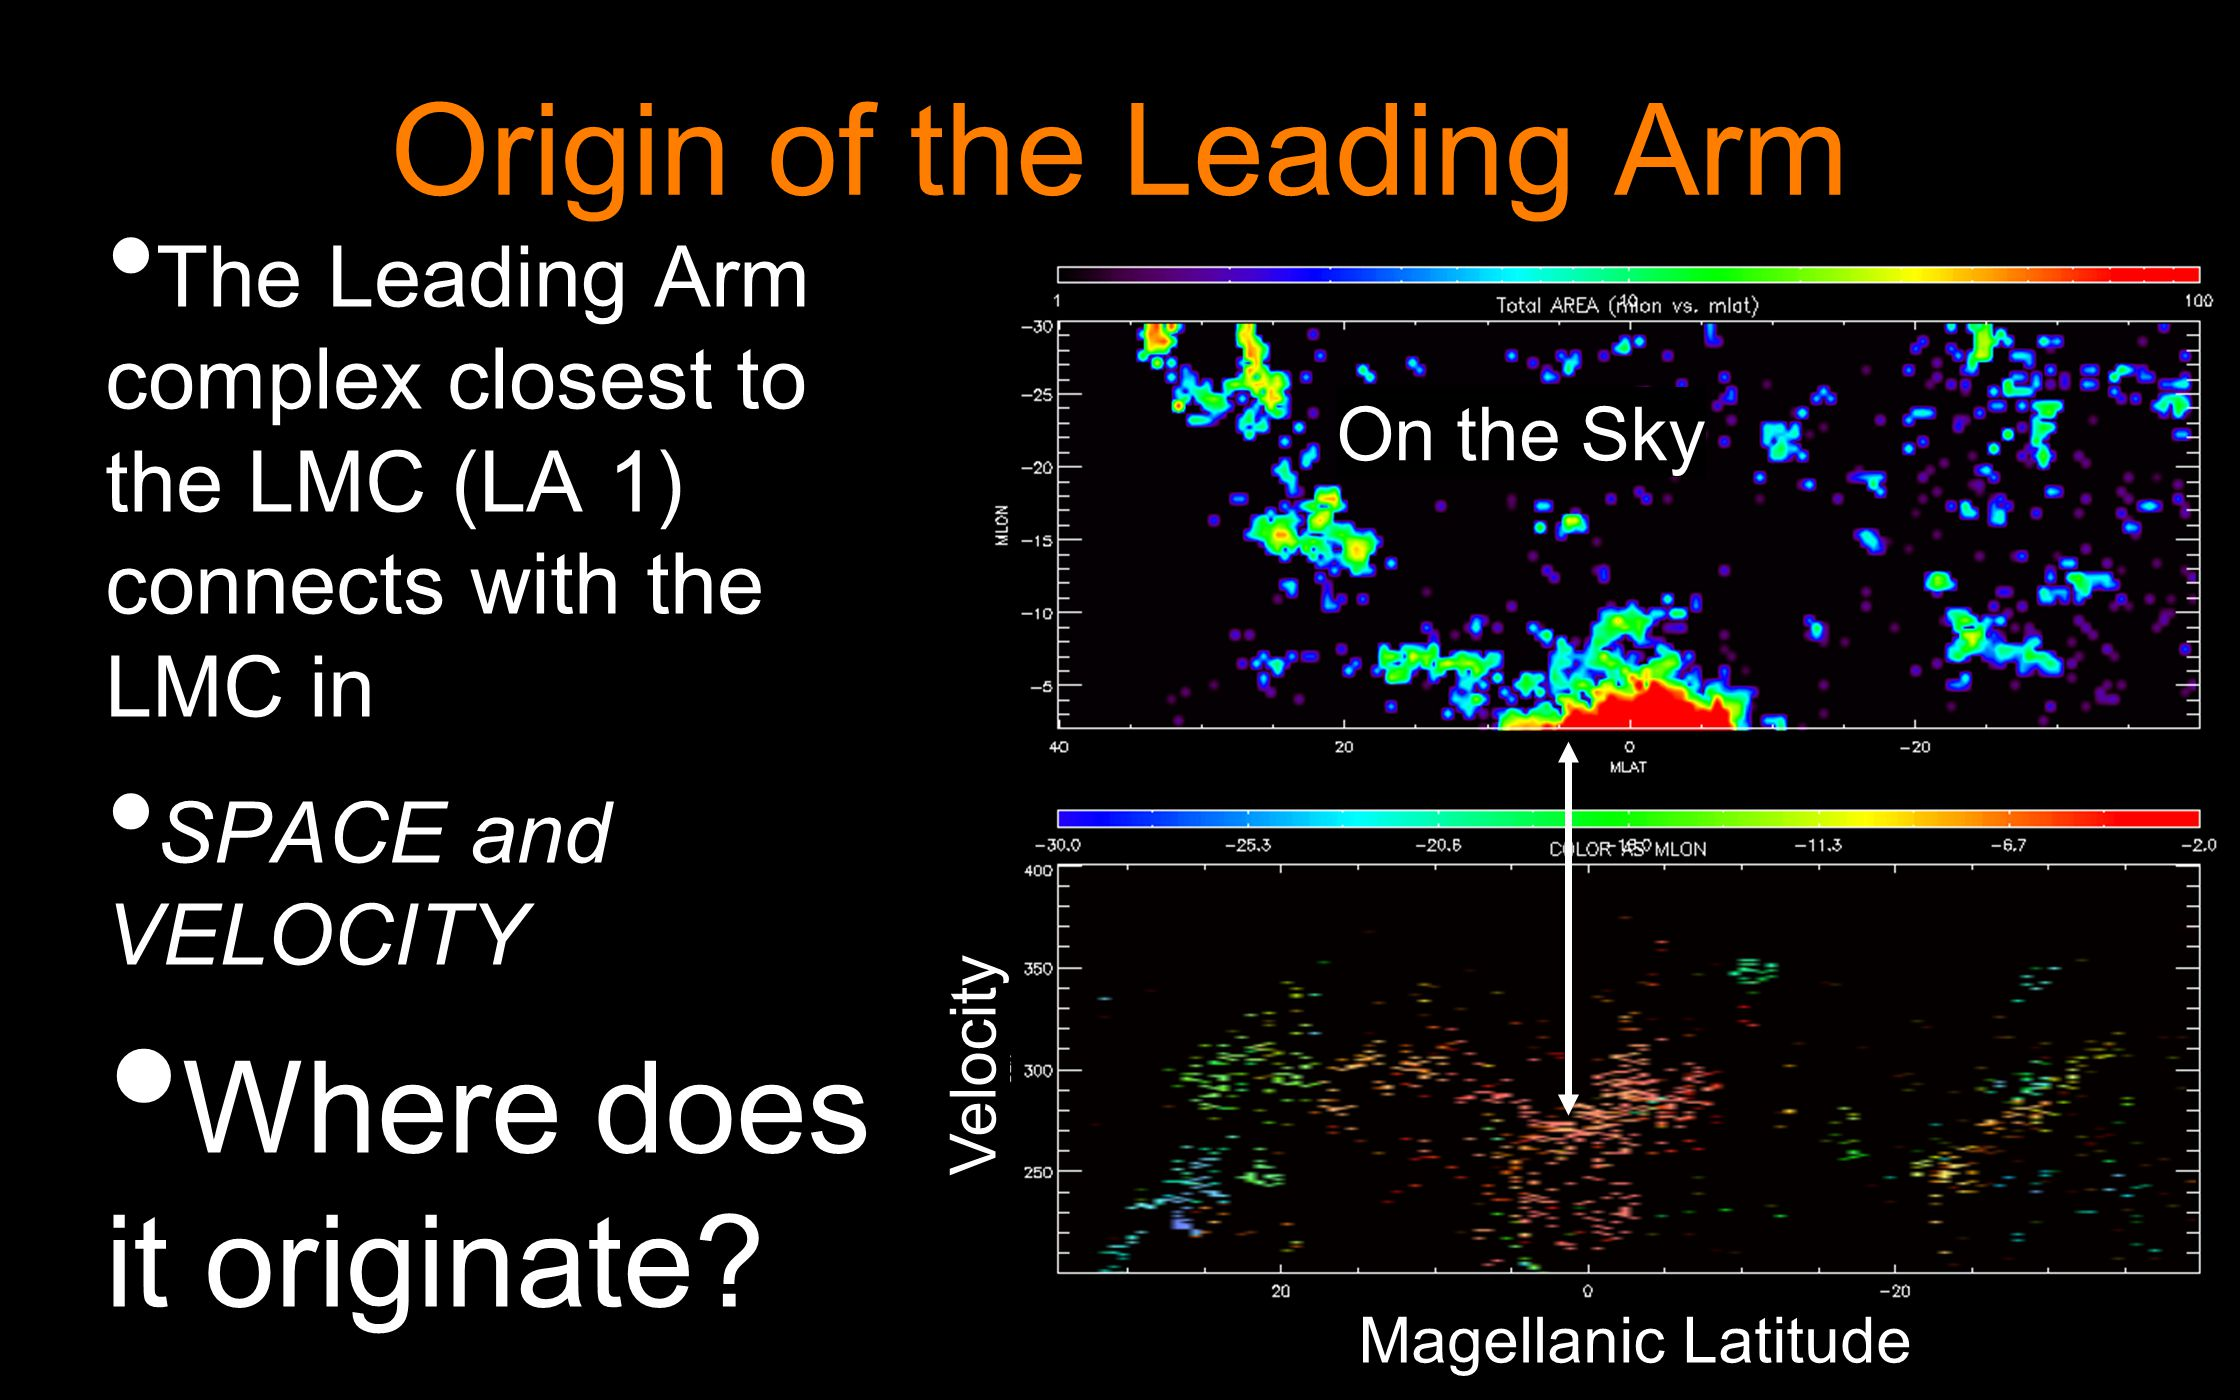 Origin of the Leading Arm The Leading Arm complex closest to the LMC (LA 1) connects with the LMC in SPACE and VELOCITY Where does it originate.